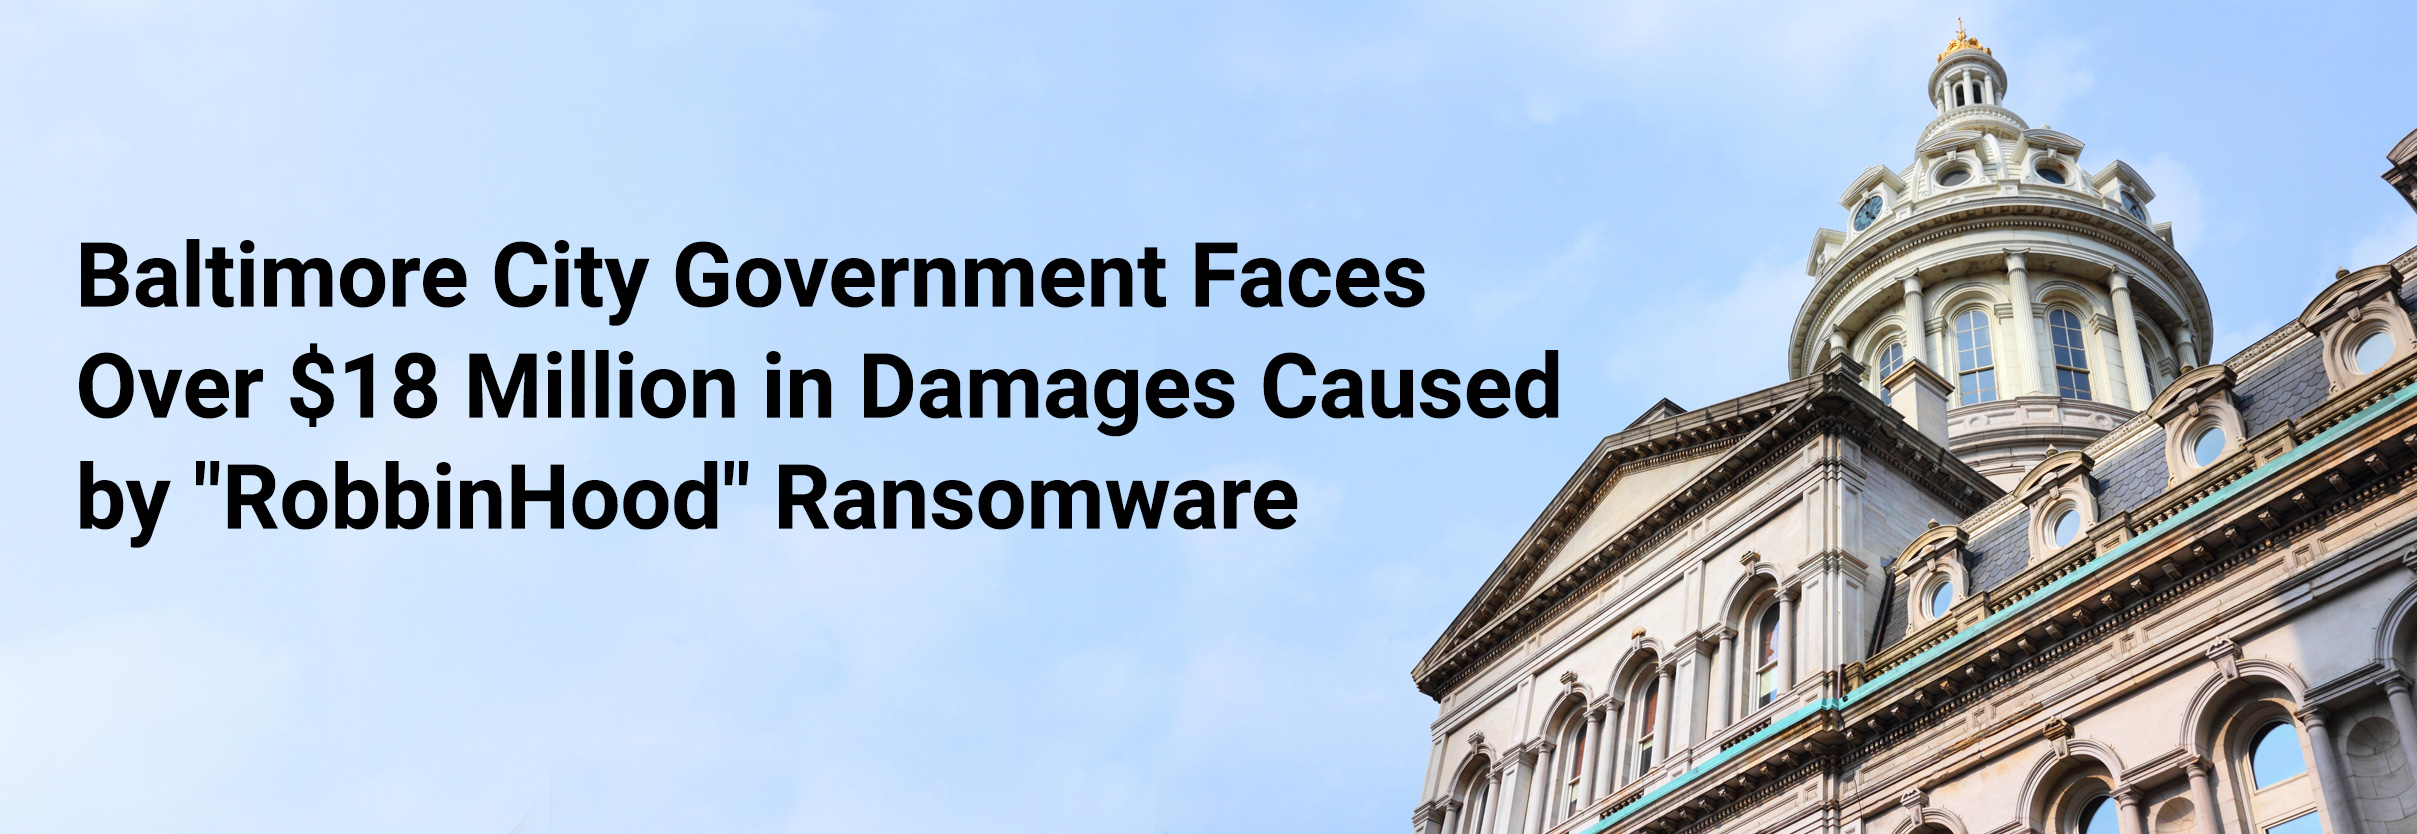 "Baltimore City Government Faces Over $18 Million in Damages Caused by ""RobbinHood"" Ransomware"